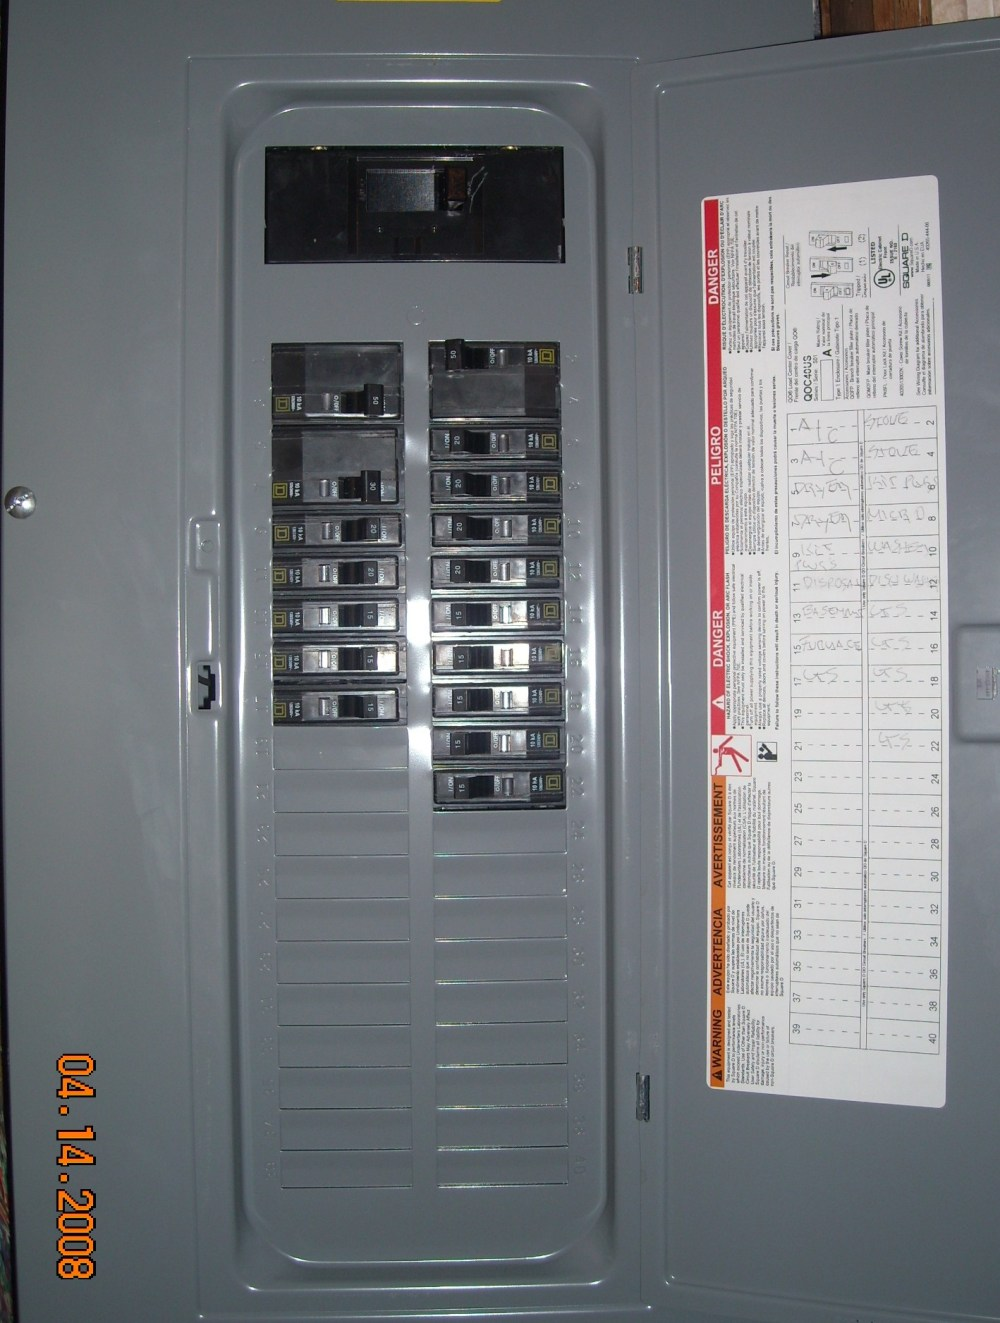 medium resolution of electric main fuse box wiring diagram third levelfuse box electricity wiring diagram todays household fuse box